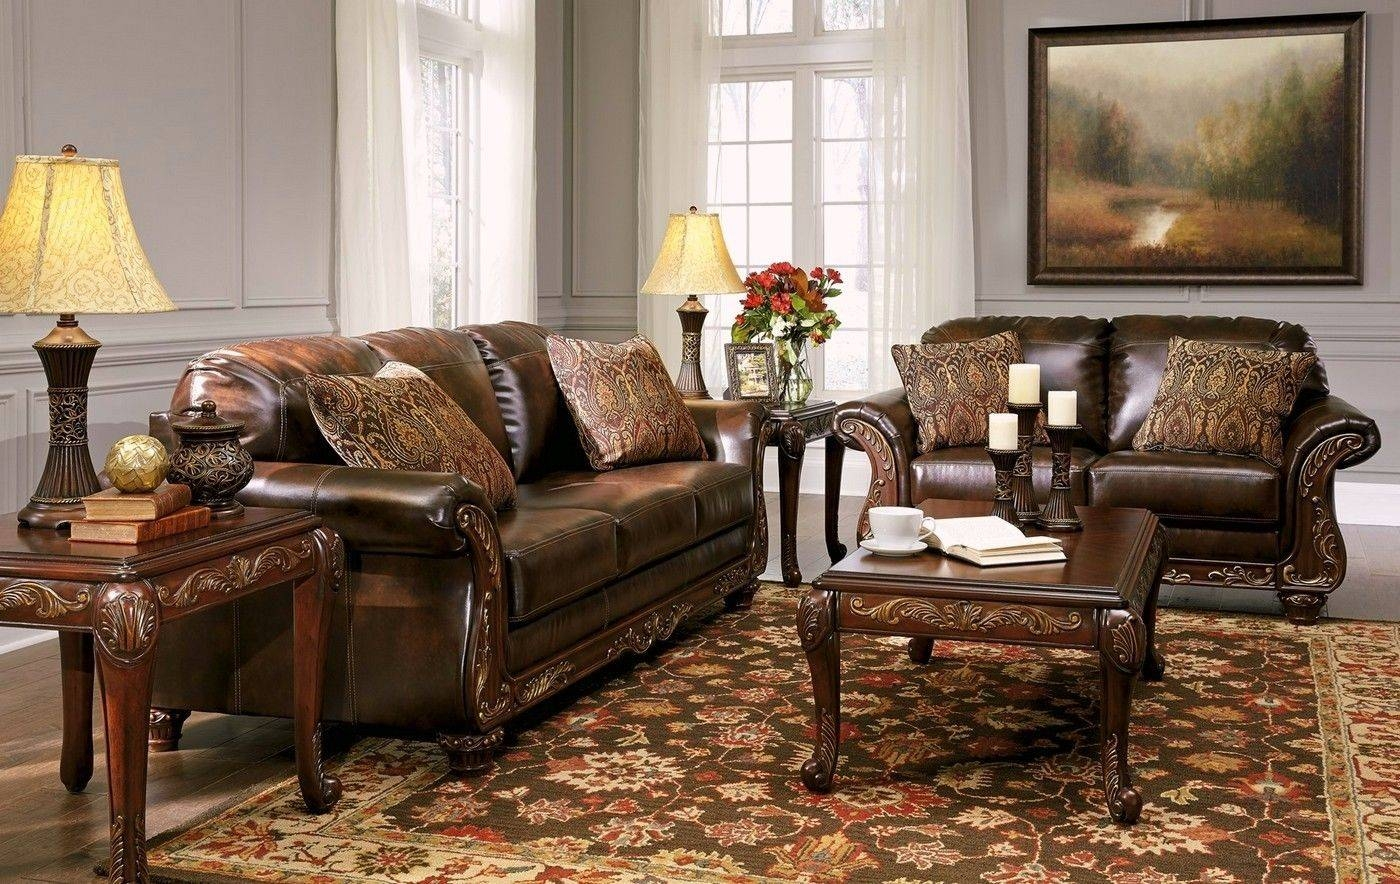 Vanceton Mocha Brown Leather Traditional Wood Sofa & Loveseat with regard to Traditional Leather Couch (Image 30 of 30)